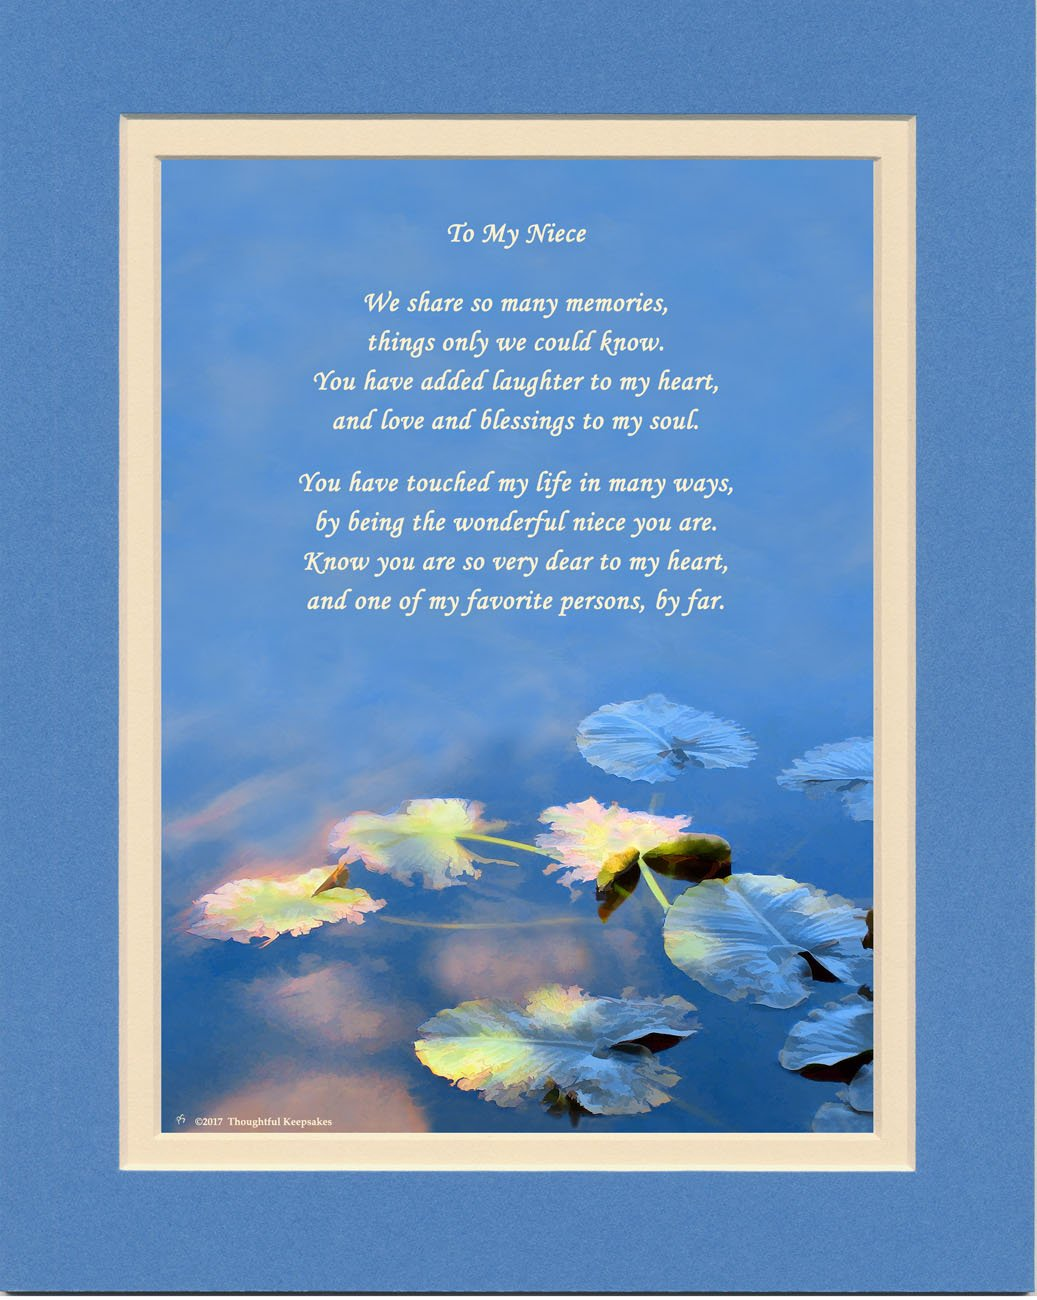 Niece Gift with You Have Touched My Life in Many Ways, By Being the Wonderful Niece You Are Poem. Water Lily Leaves, 8x10 Matted. Special Birthday or for Niece.